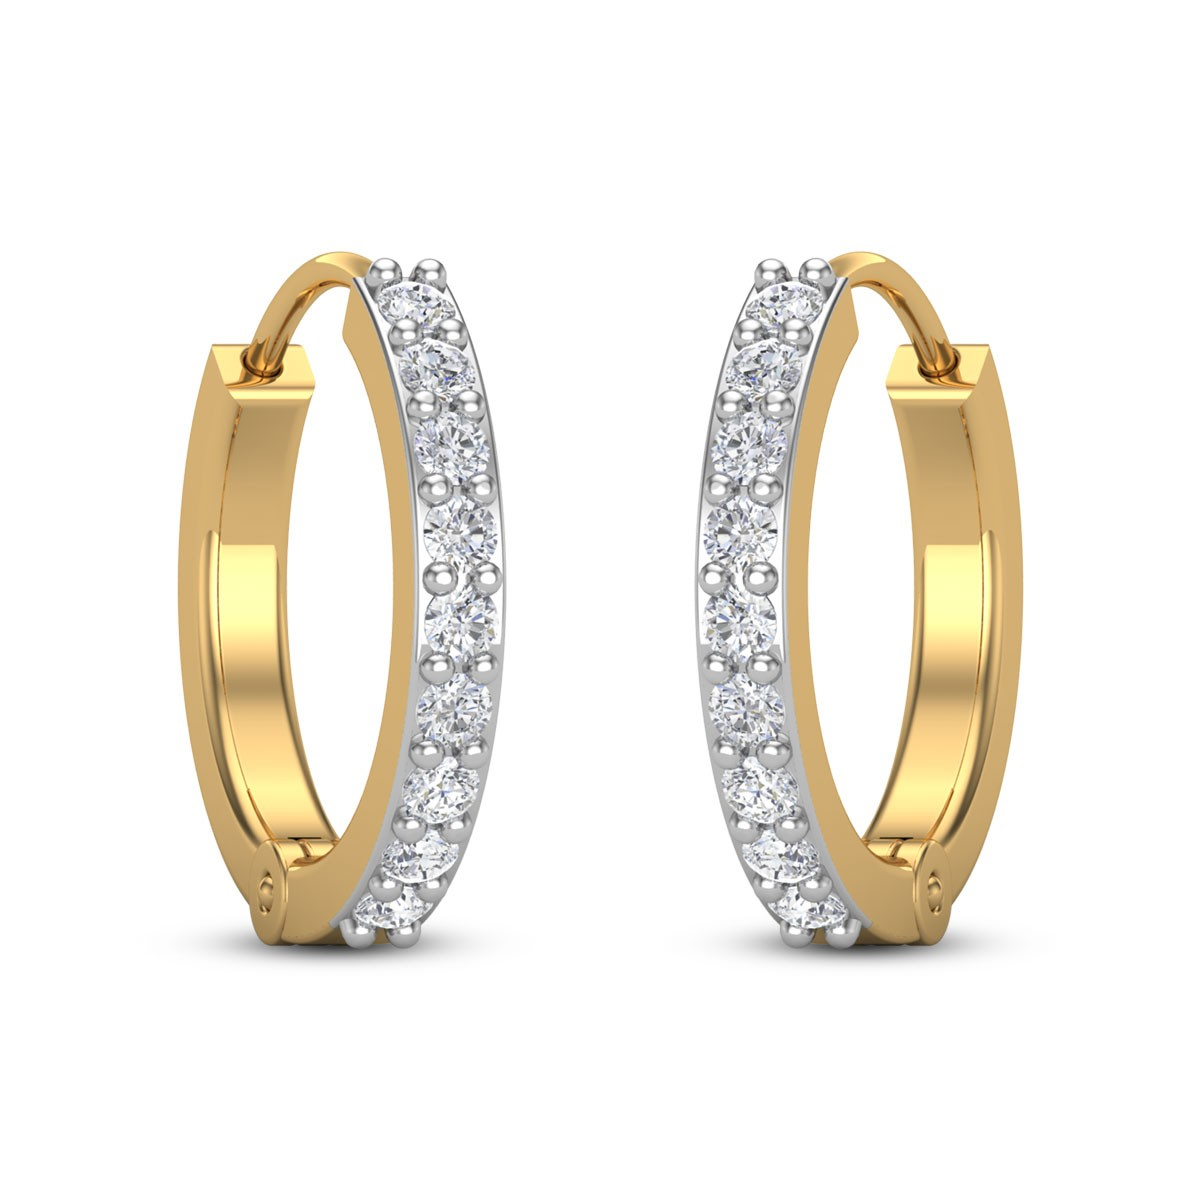 Alexis Diamond Earrings